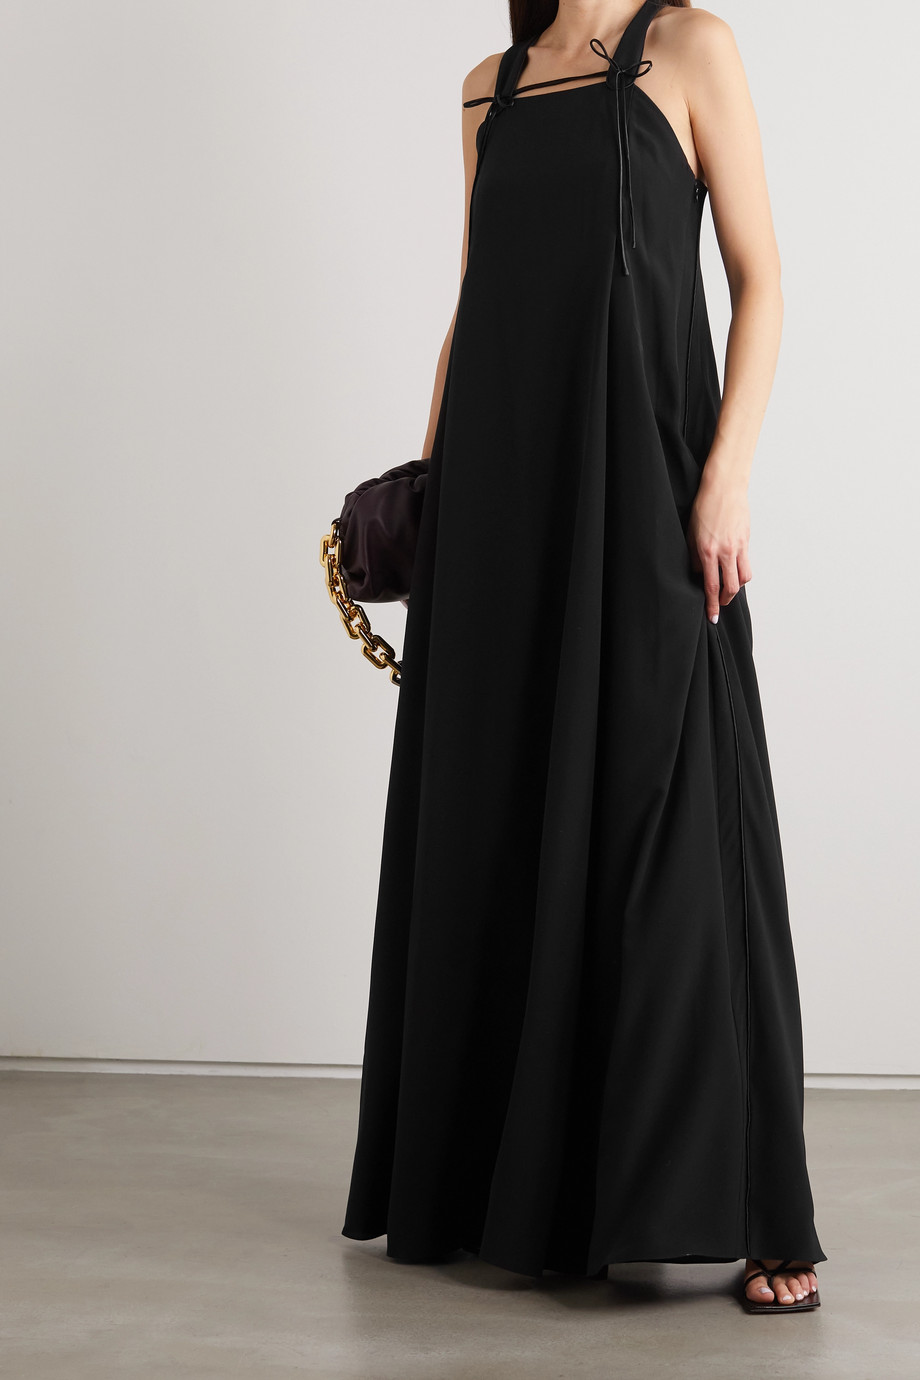 Victoria Beckham Satin-trimmed silk-crepe maxi dress